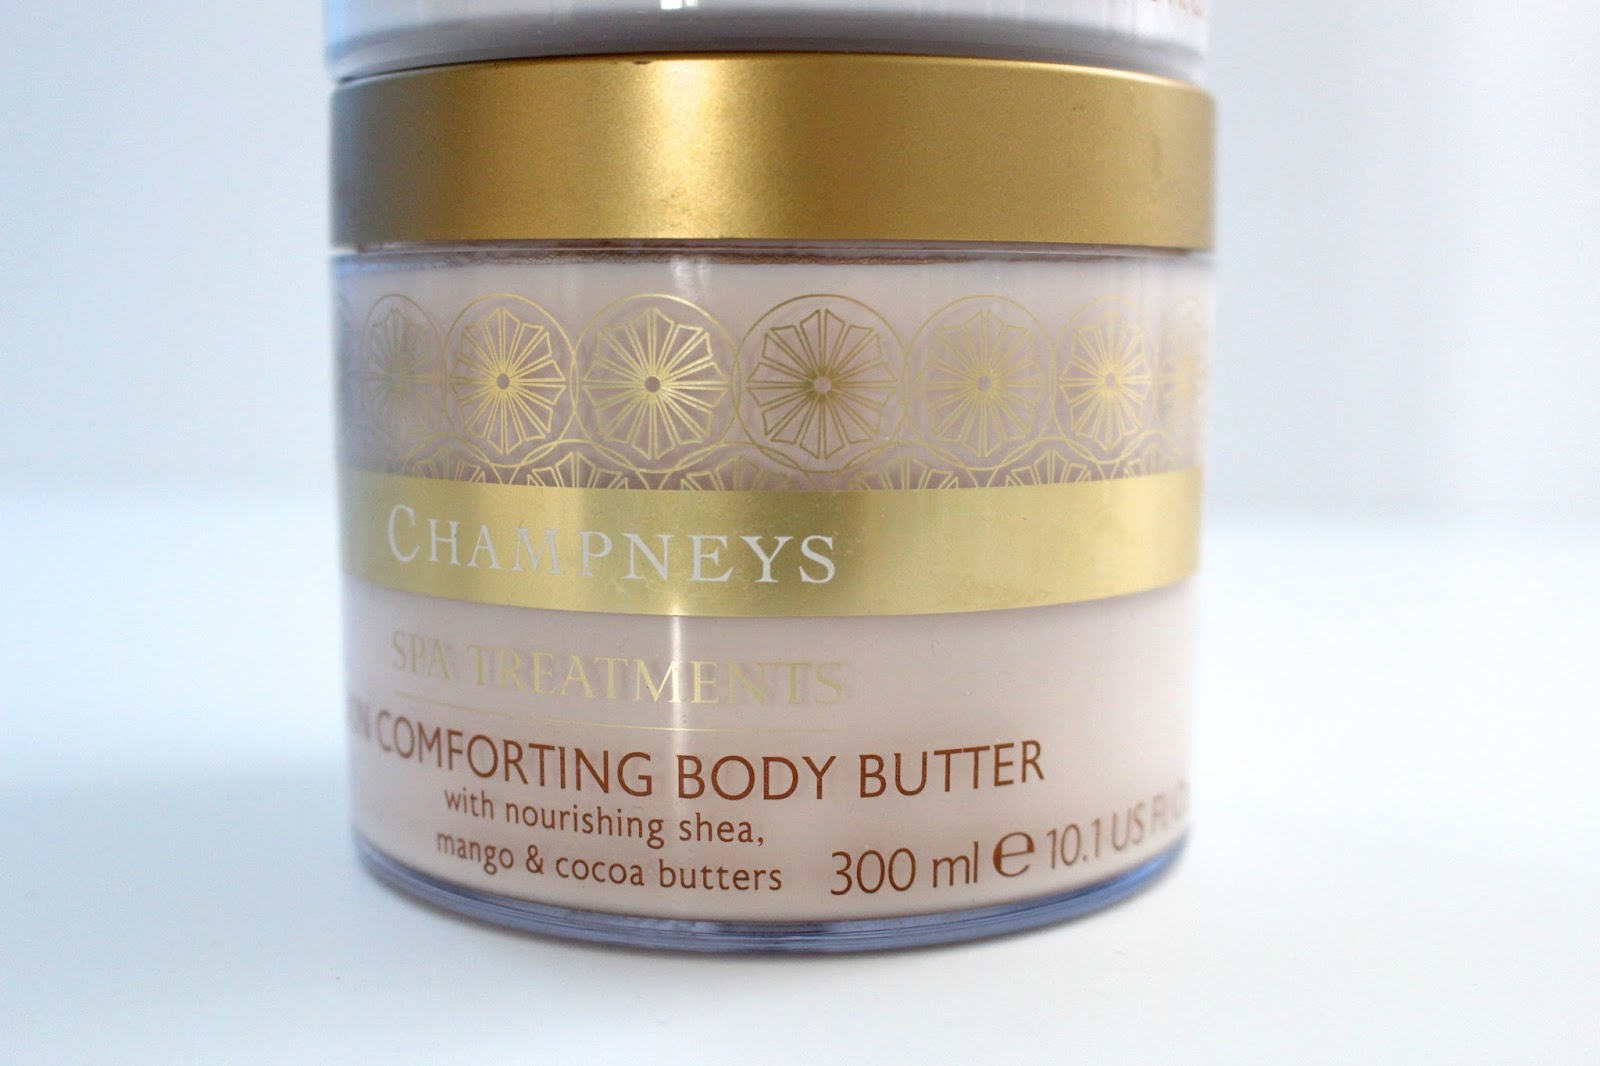 Champneys Spa Products